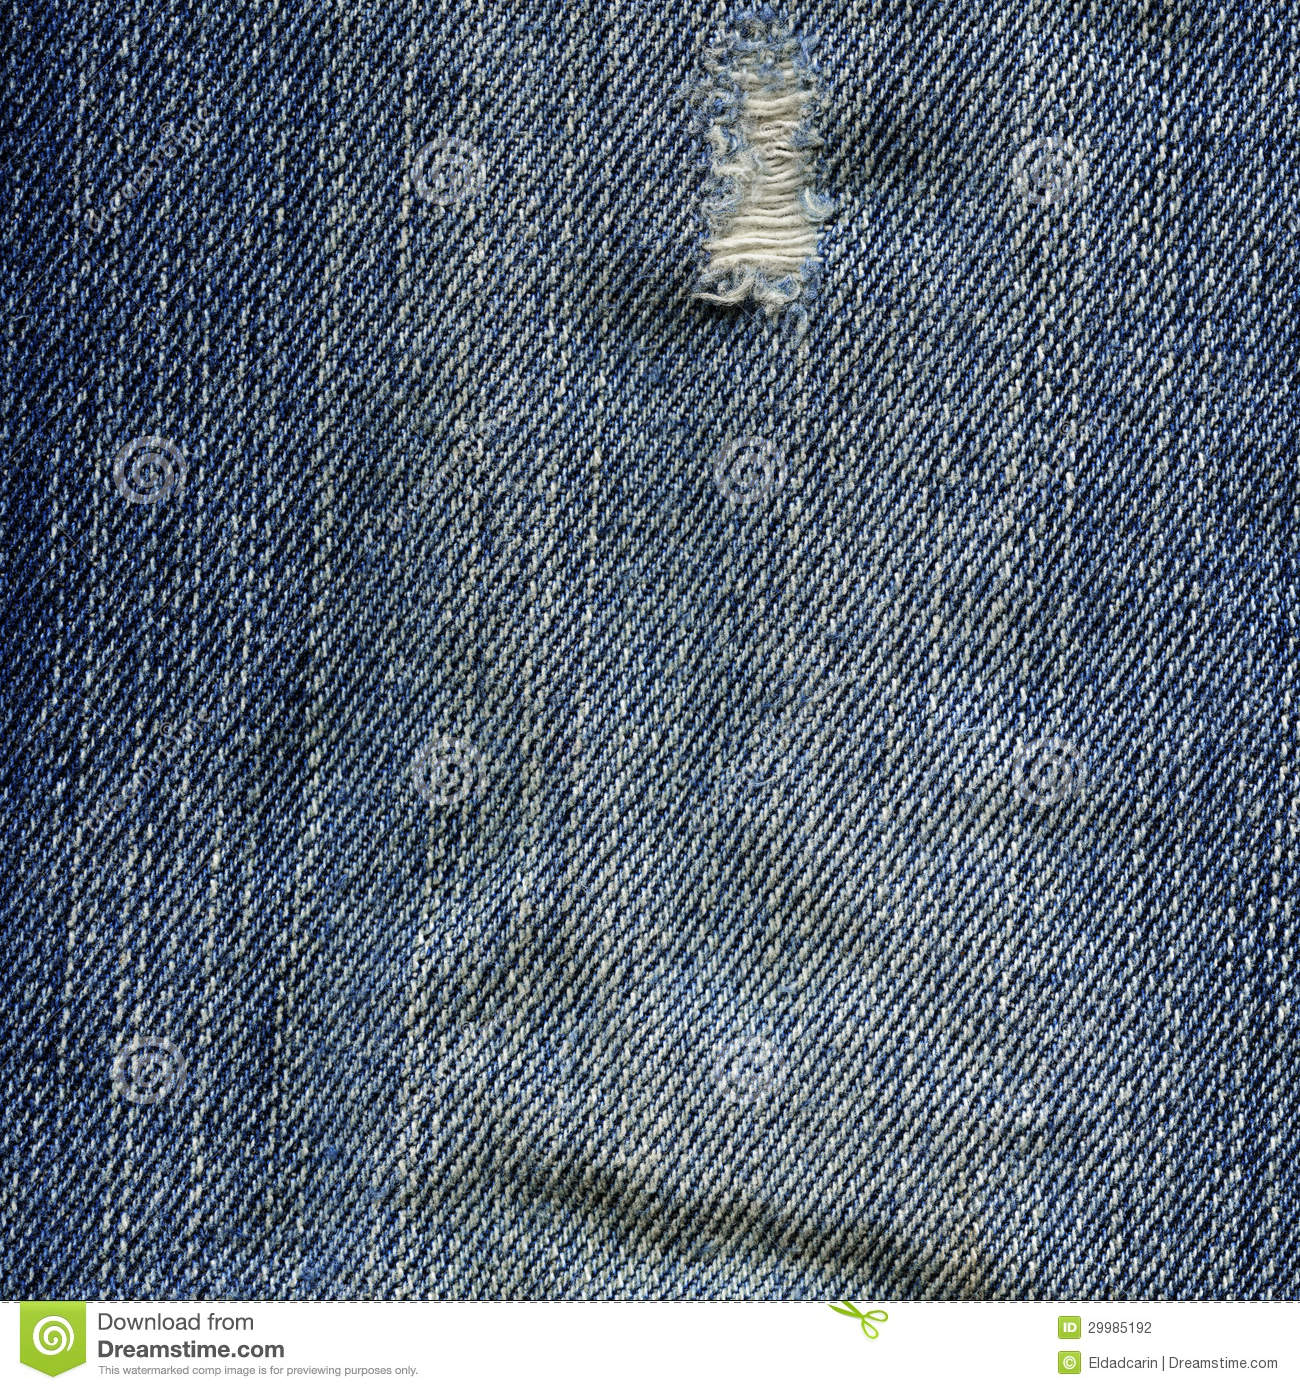 Denim Fabric Texture - Worn Out - 673.4KB